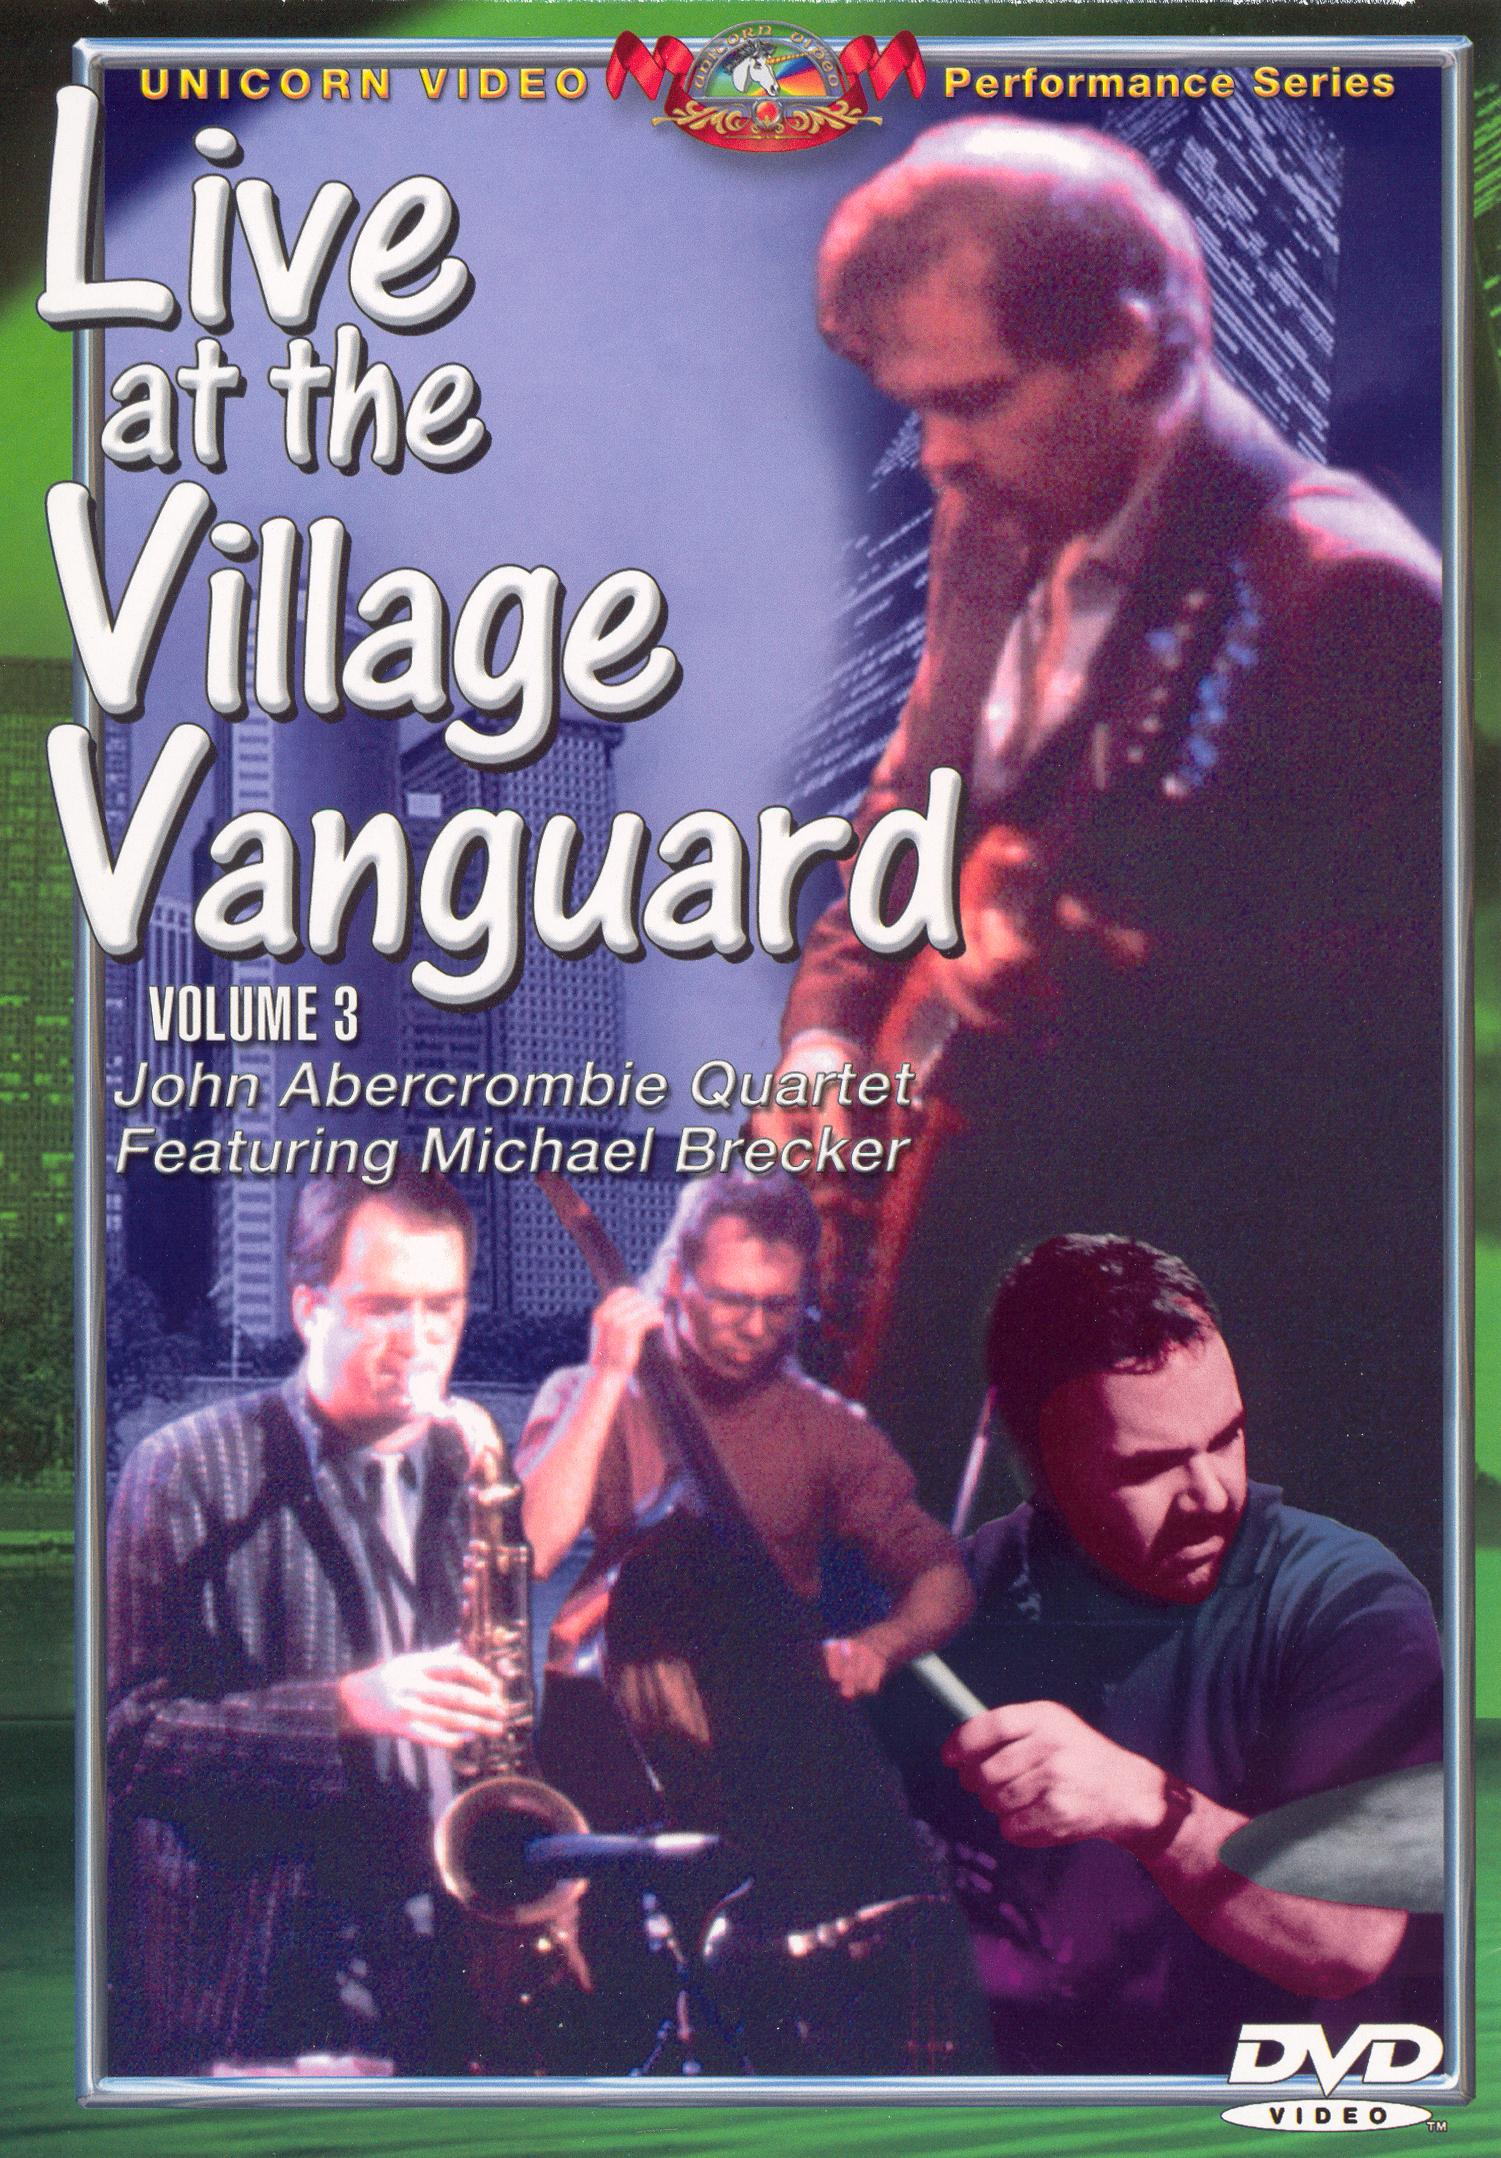 Live from the Village Vanguard, Vol. 3